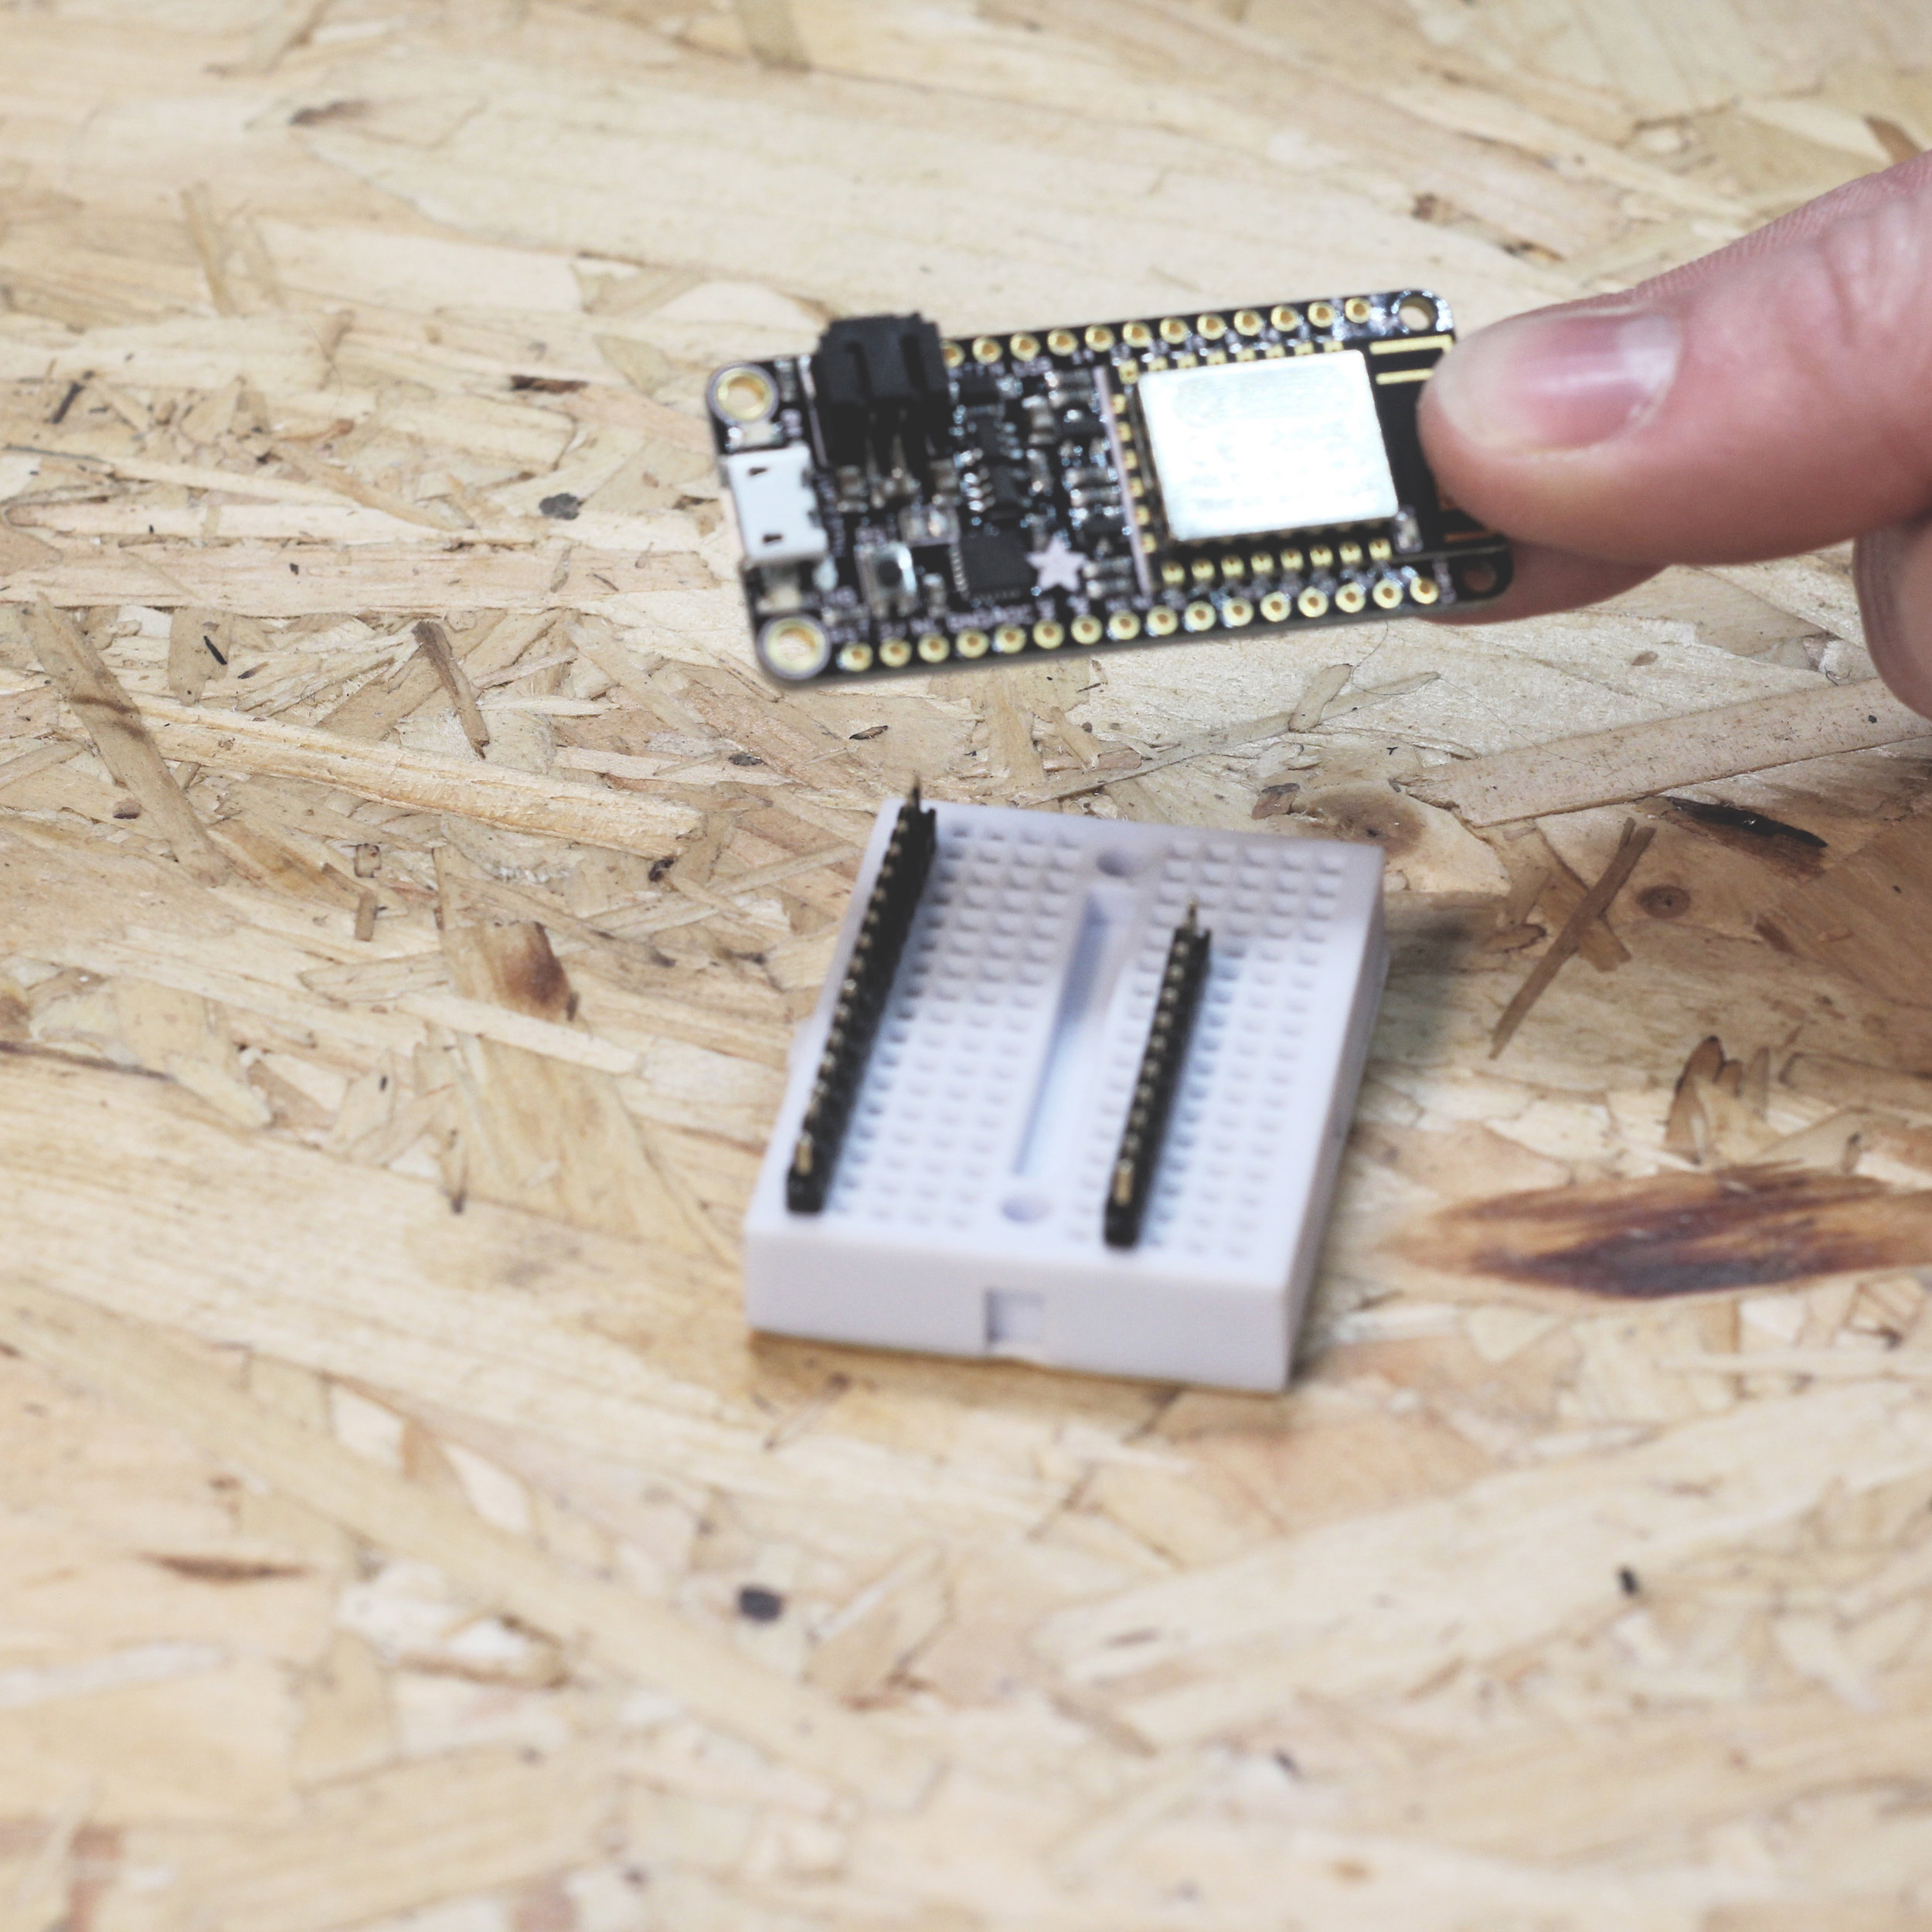 Place the Adafruit Huzzah ESP8266